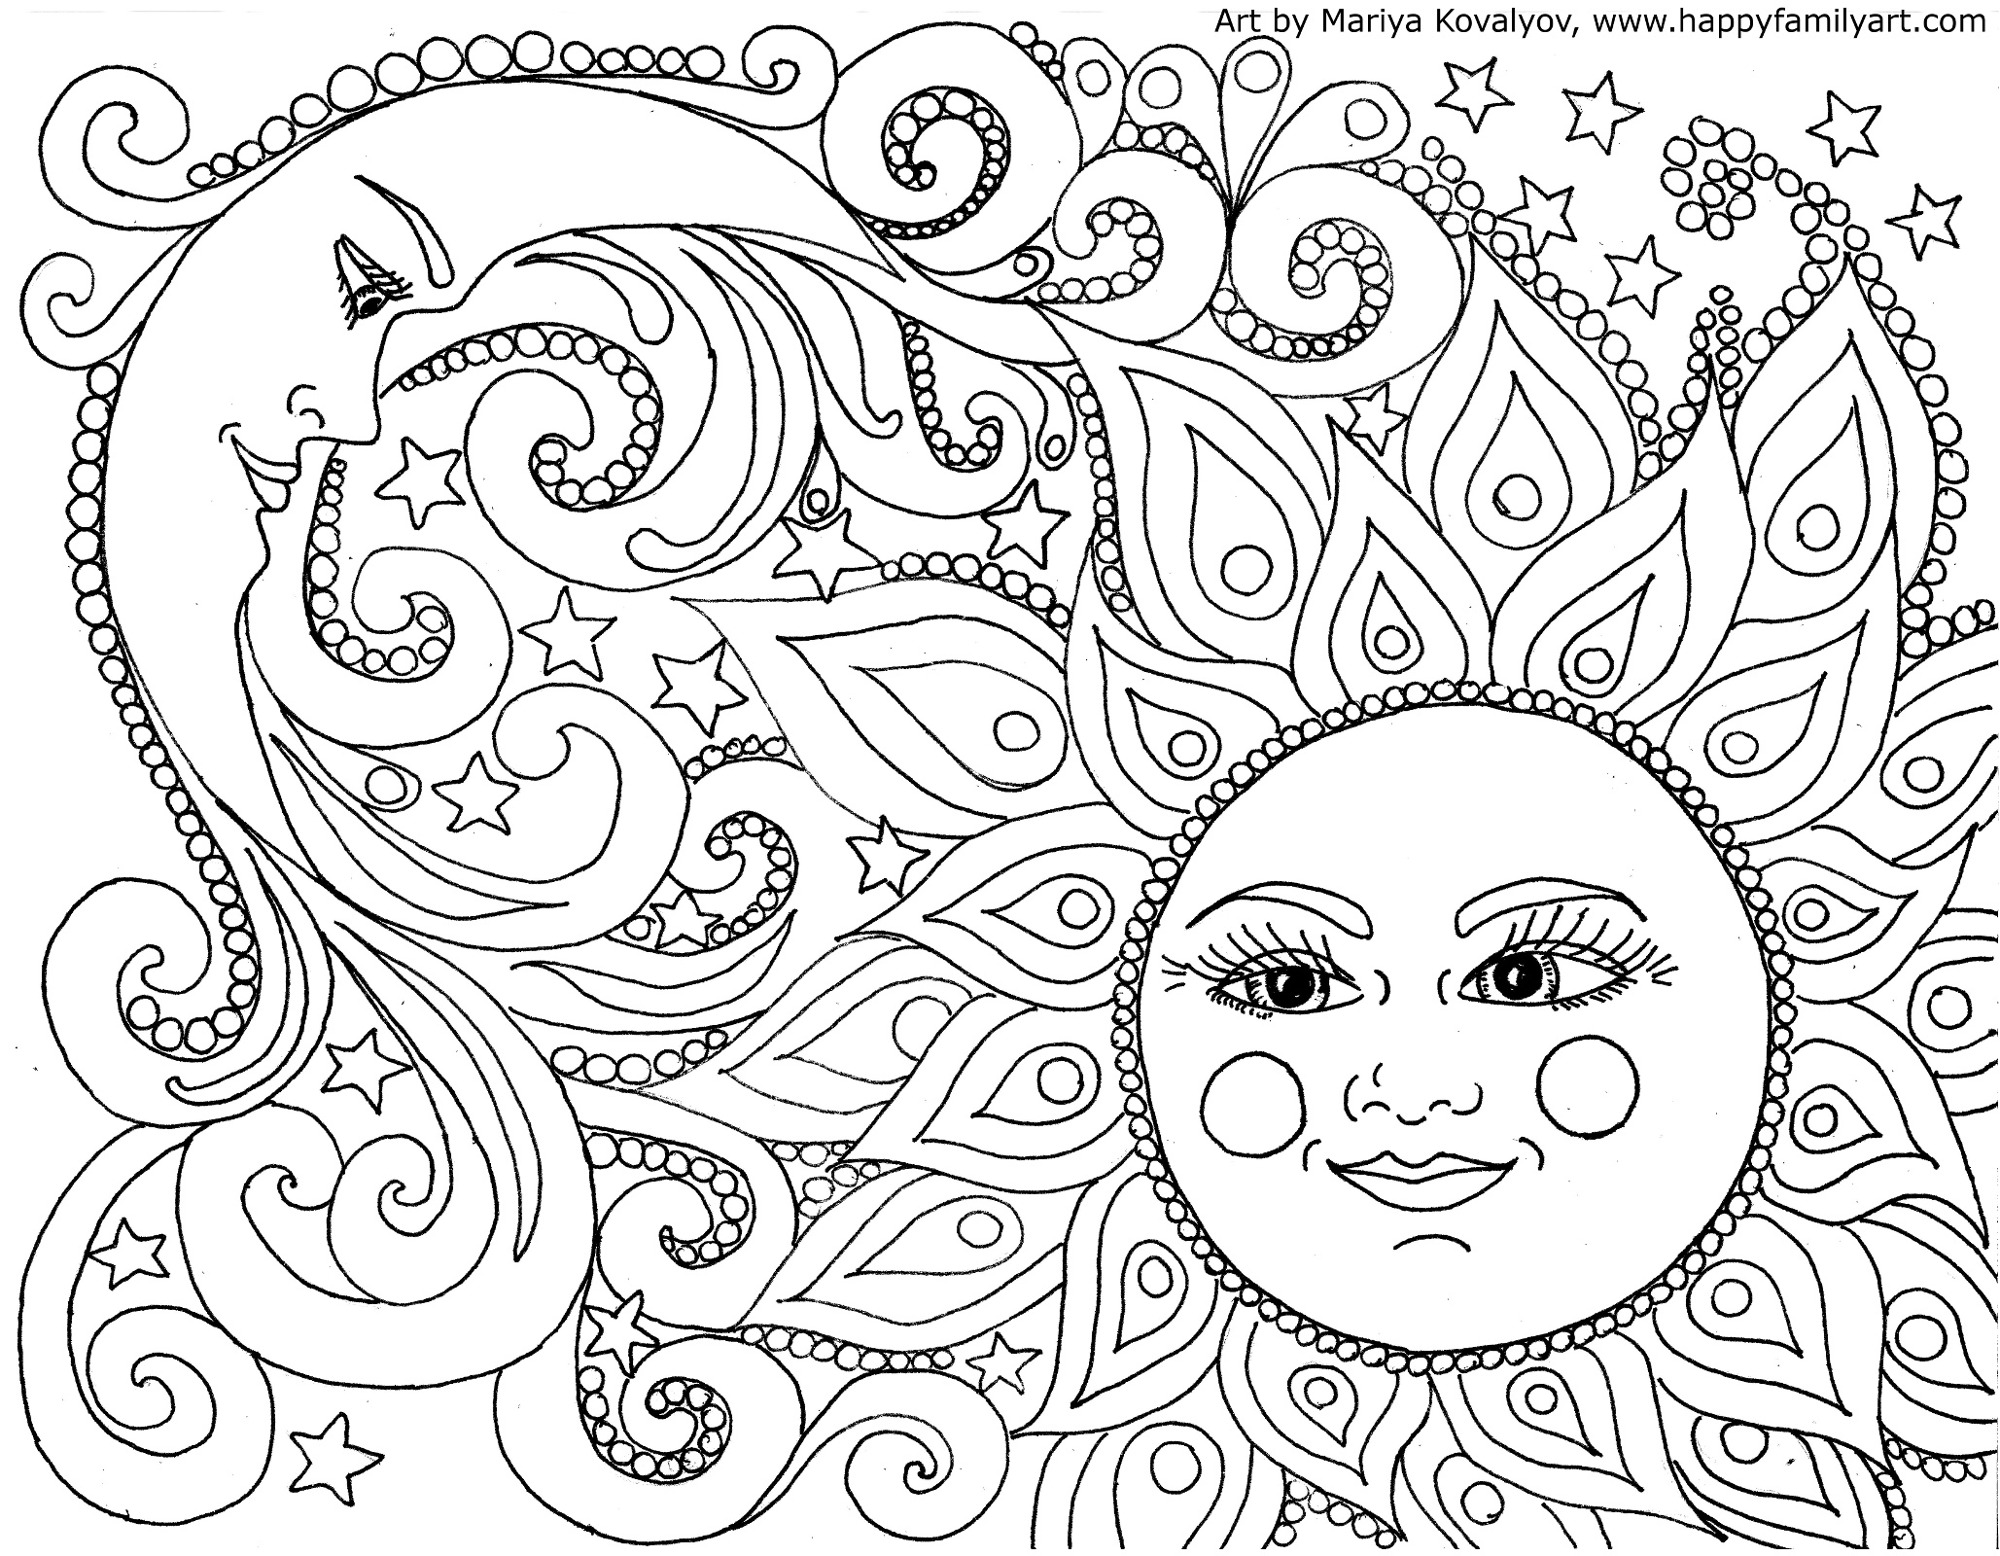 Awesome Coling Pages Pattern - Coloring Page Ideas - seikowatches.us